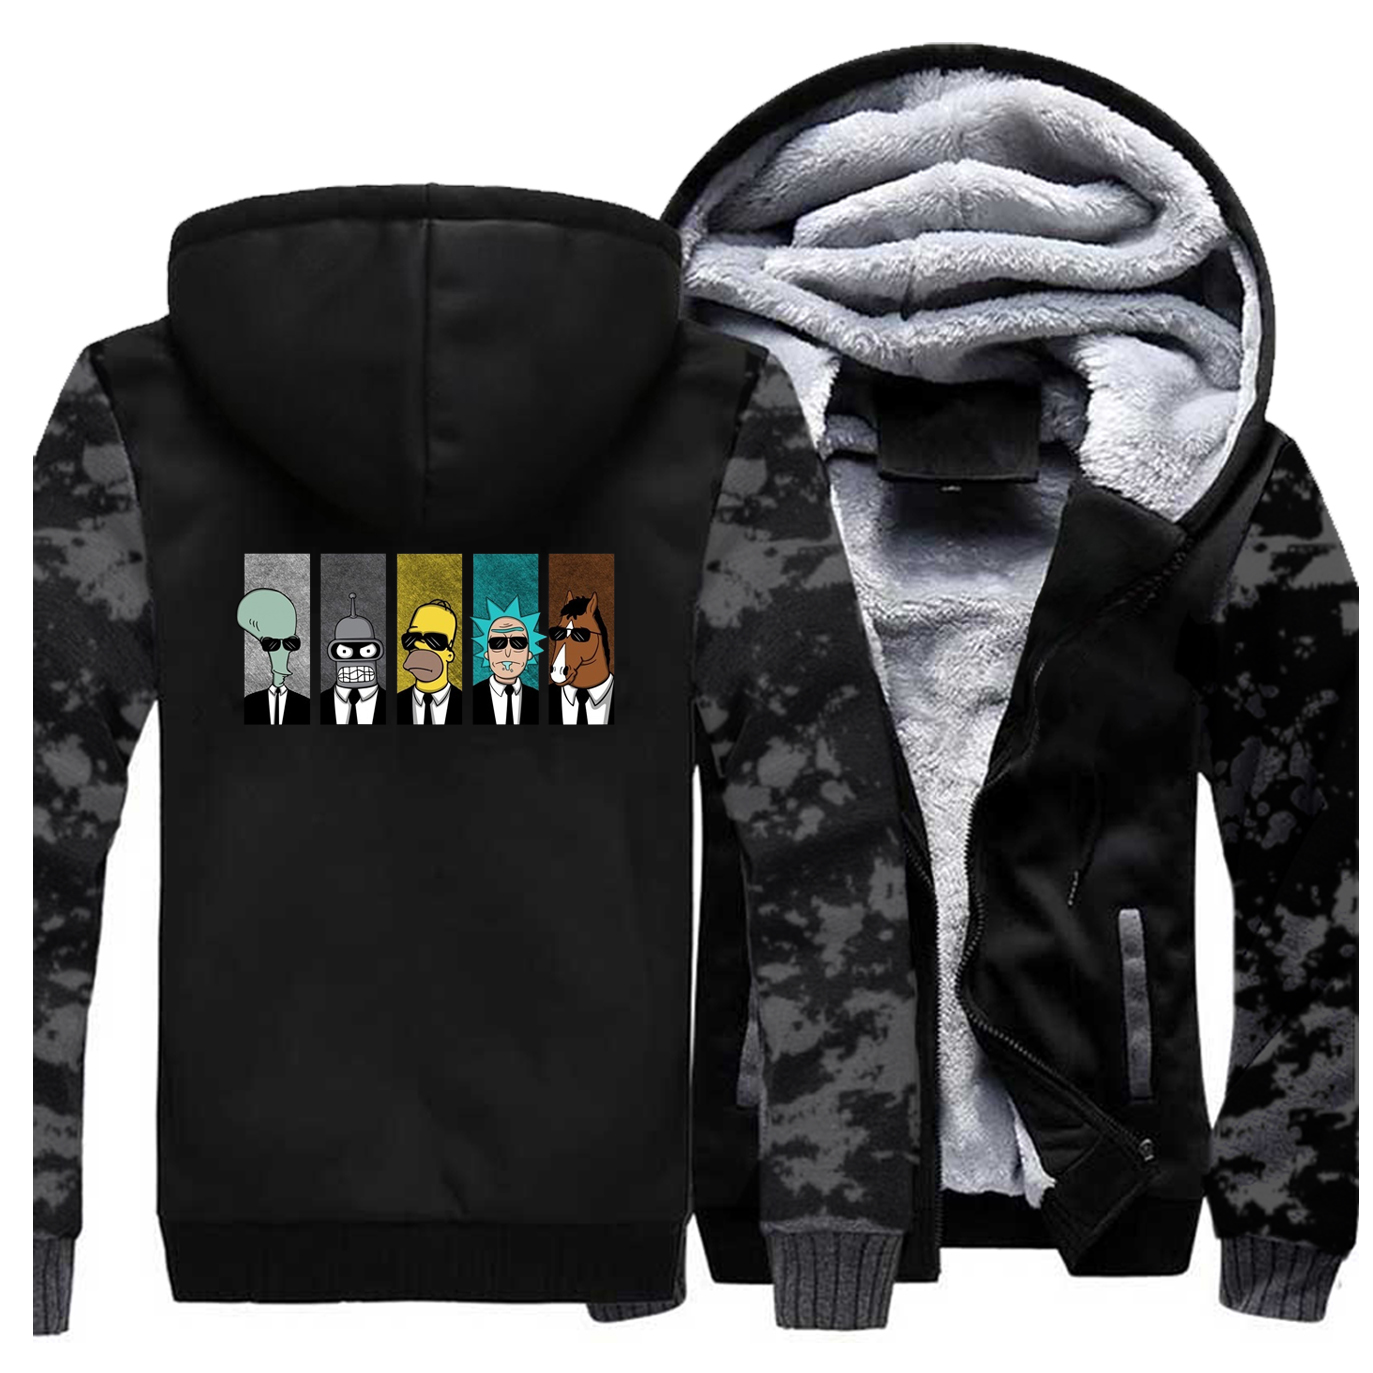 Men Funny Winter Thick Jacket Rick And Morty Fleece Warm Coat Doctor And Mharti Coats Male Thicken Sportswear Swearshirt Jackets